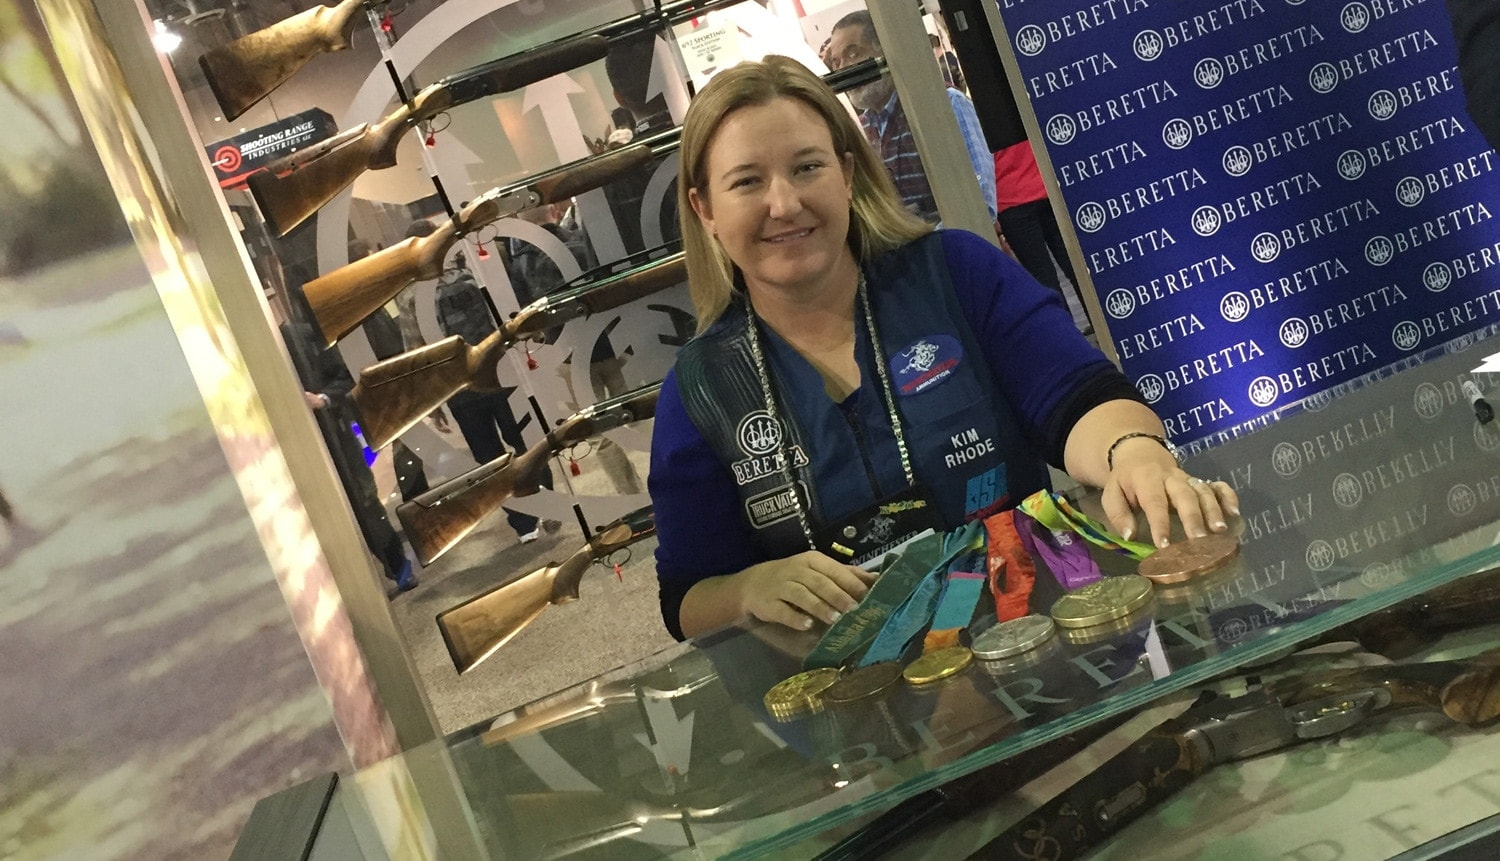 Six-time Olympic medal winner Kim Rhode appeared at the Beretta booth for a meet and greet with fans. In her display case sits the Beretta DT11 shotgun, the gun used to win 10 of 15 medals at the summer Olympic games. (Photo: Daniel Terrill/Guns.com)